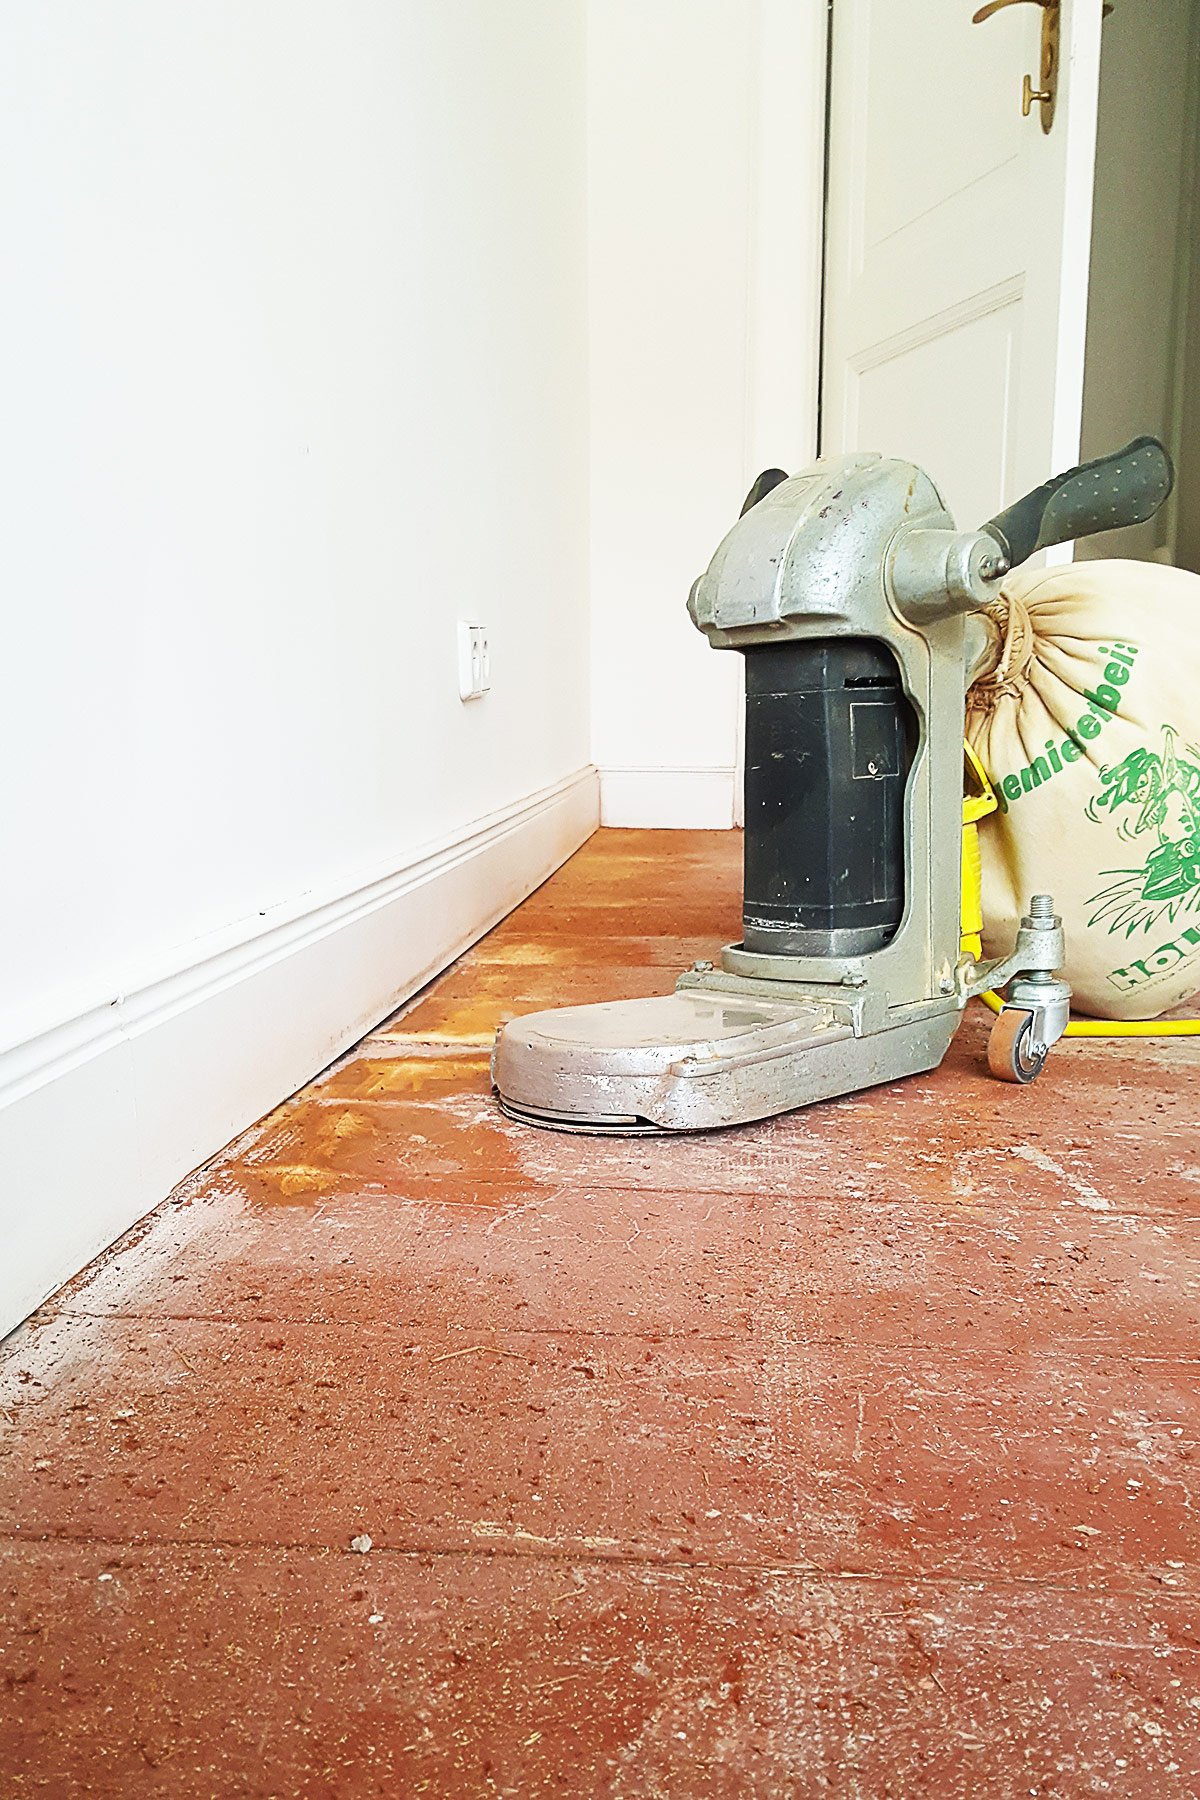 Sanding Floors - Edging Sander | Little House On The Corner